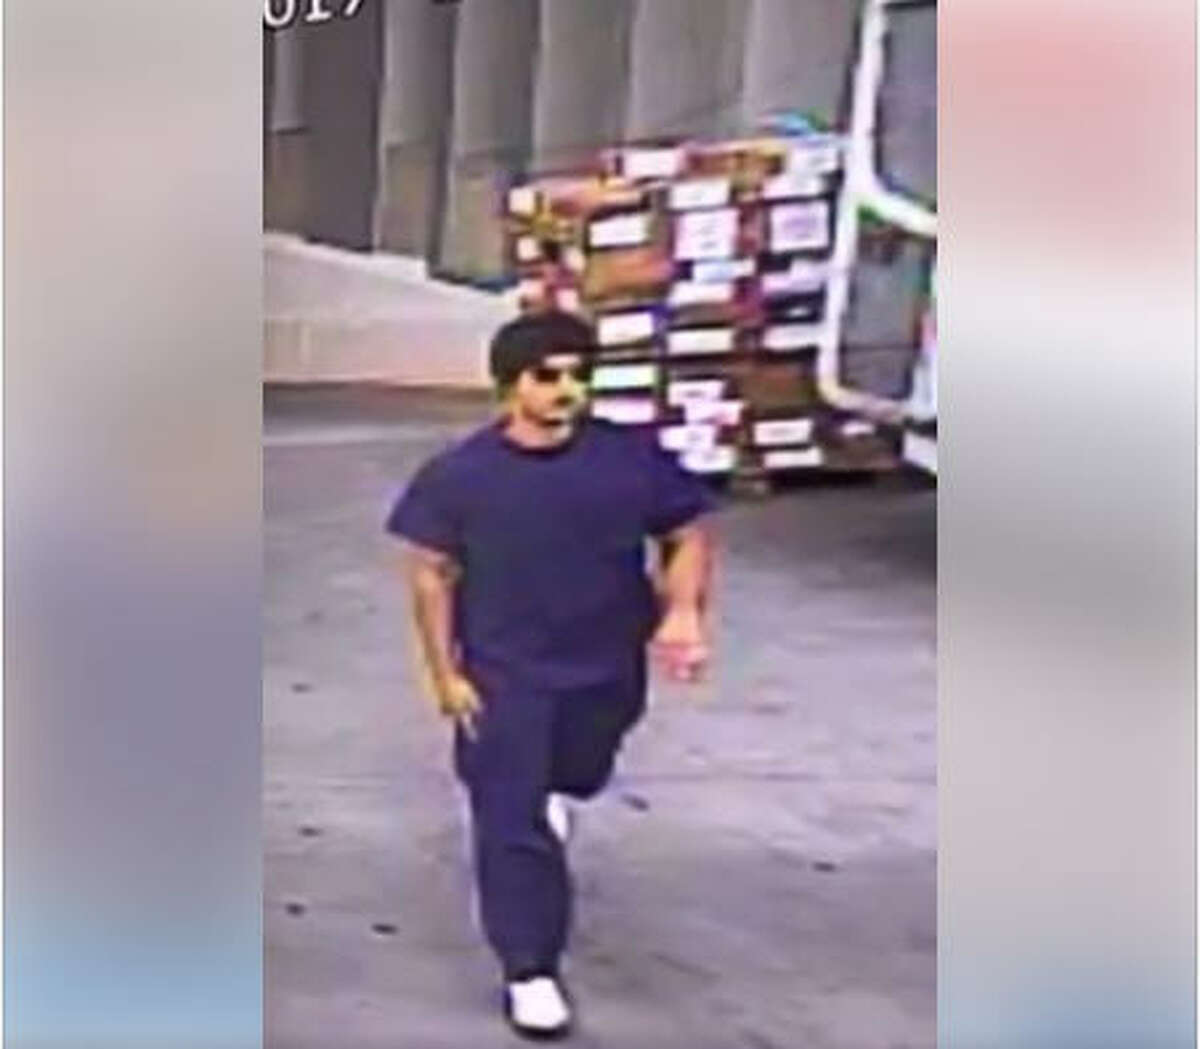 An unidentified man opened fire at a car at the U.S. Consulate office inGuadalajara. An unidentified man fired shots at a car at the U.S. Consulate office inGuadalajara, Mexico. Mexican and American officials are seeking help identifying and catching the man.